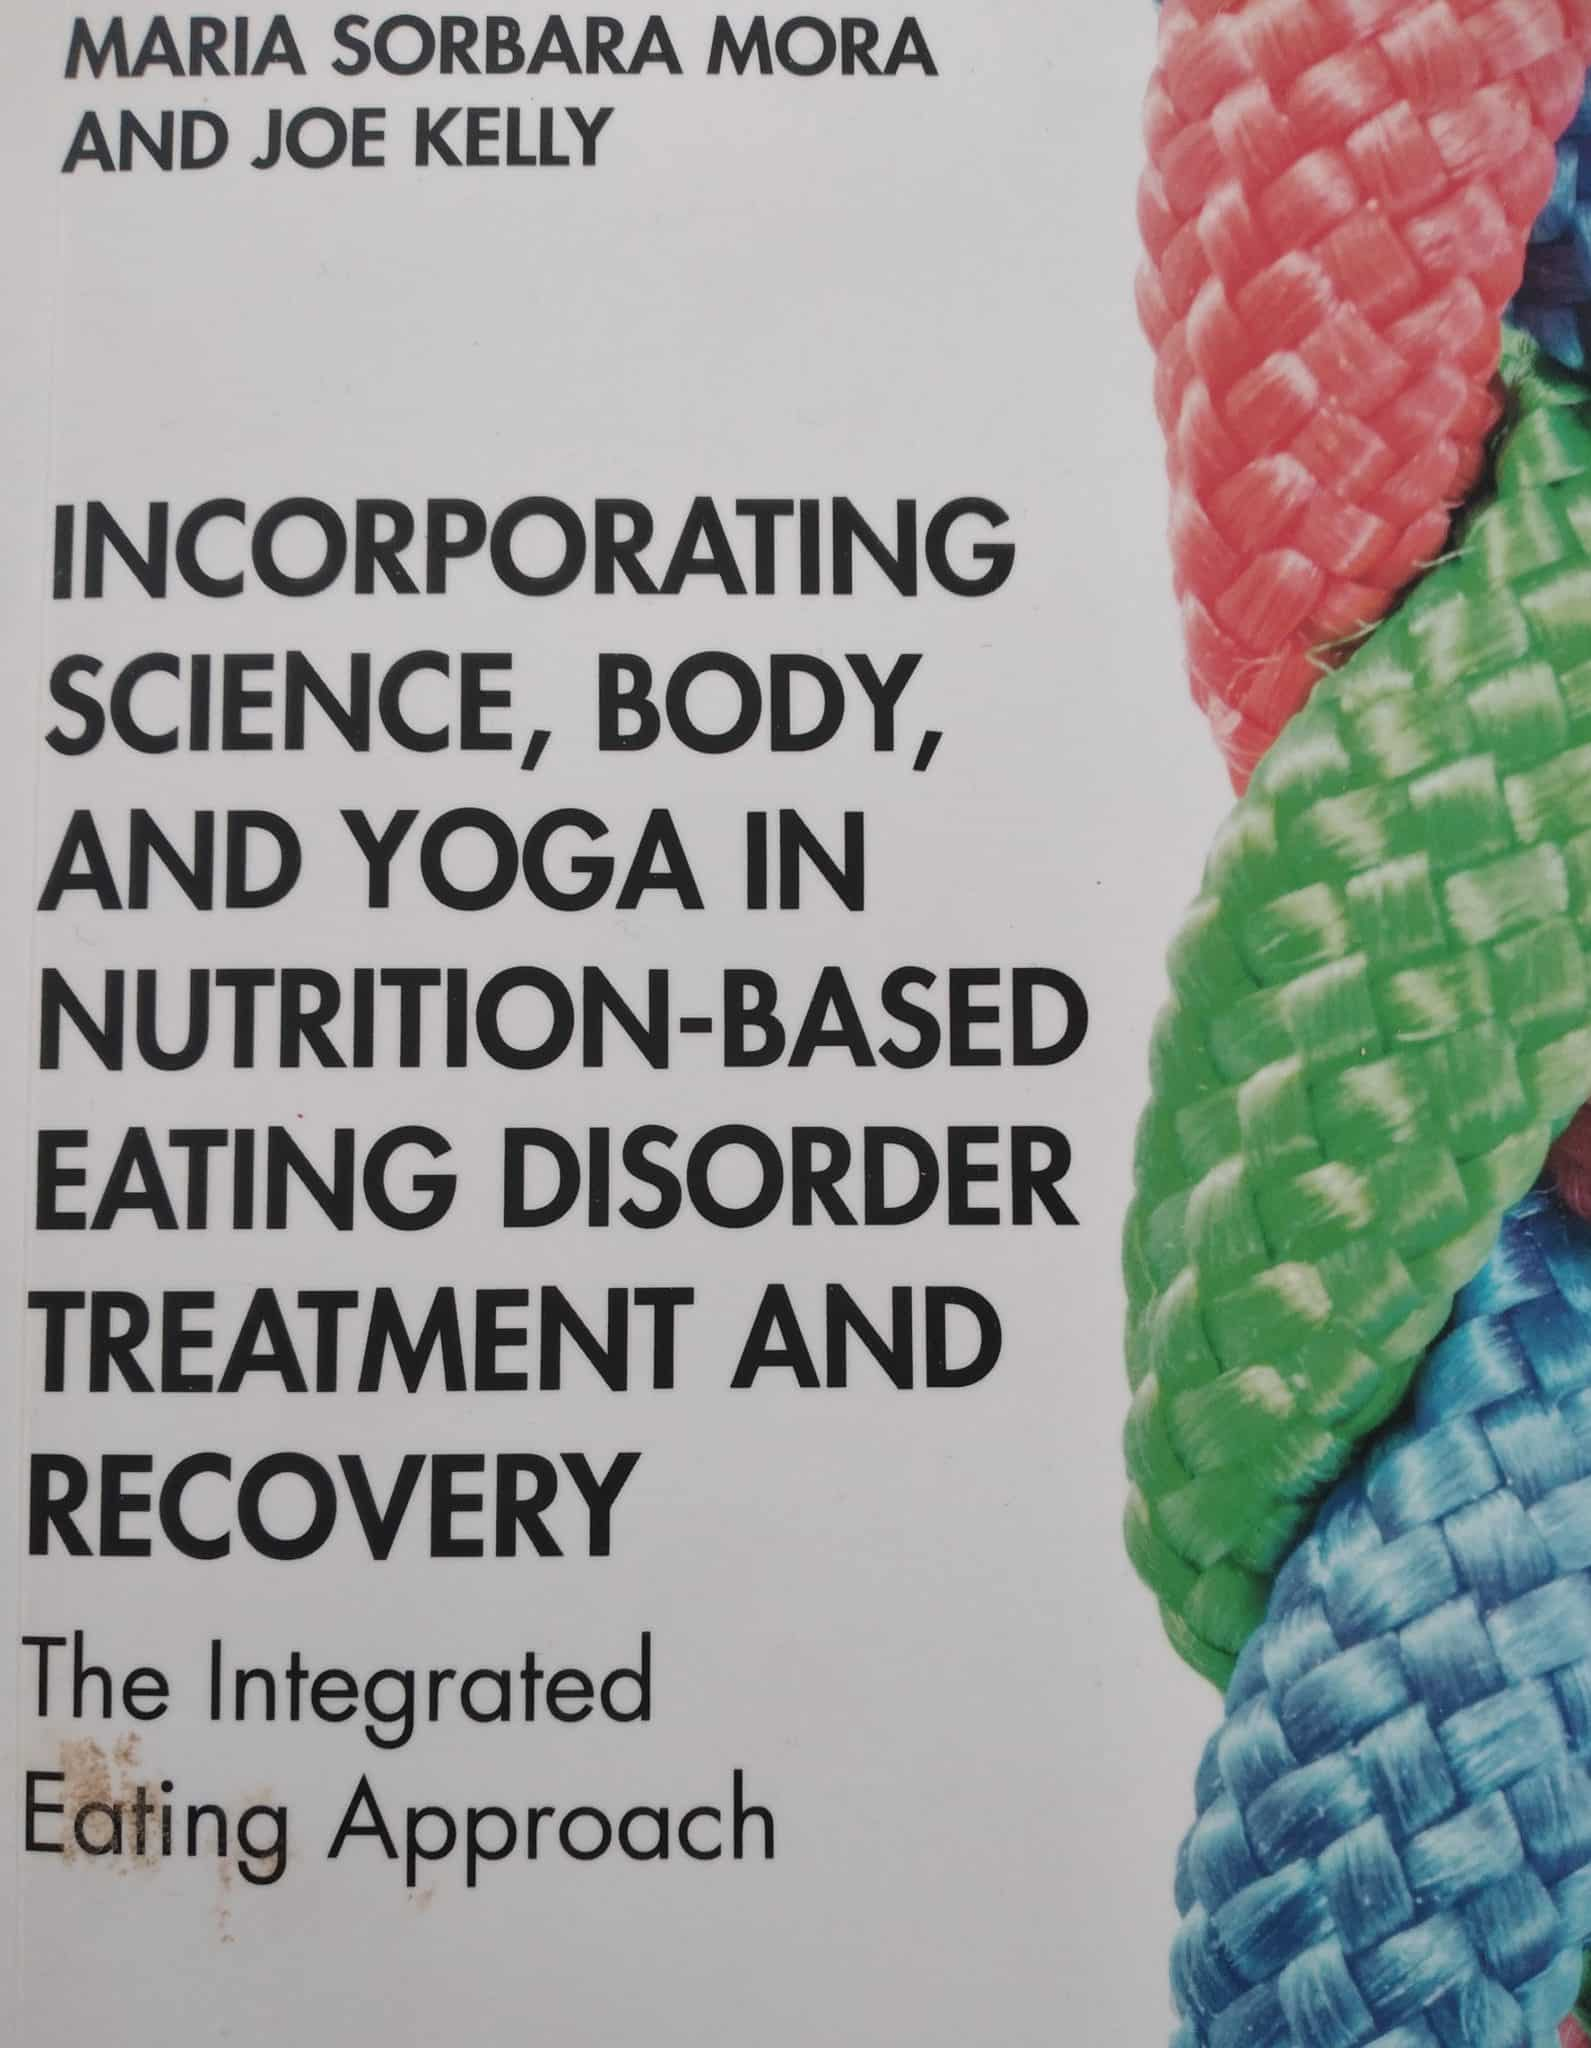 Incorporating Science, Body, And Yoga In Nutrition-based Eating Disorder Treatment And Recovery. The Integrated Eating Approach